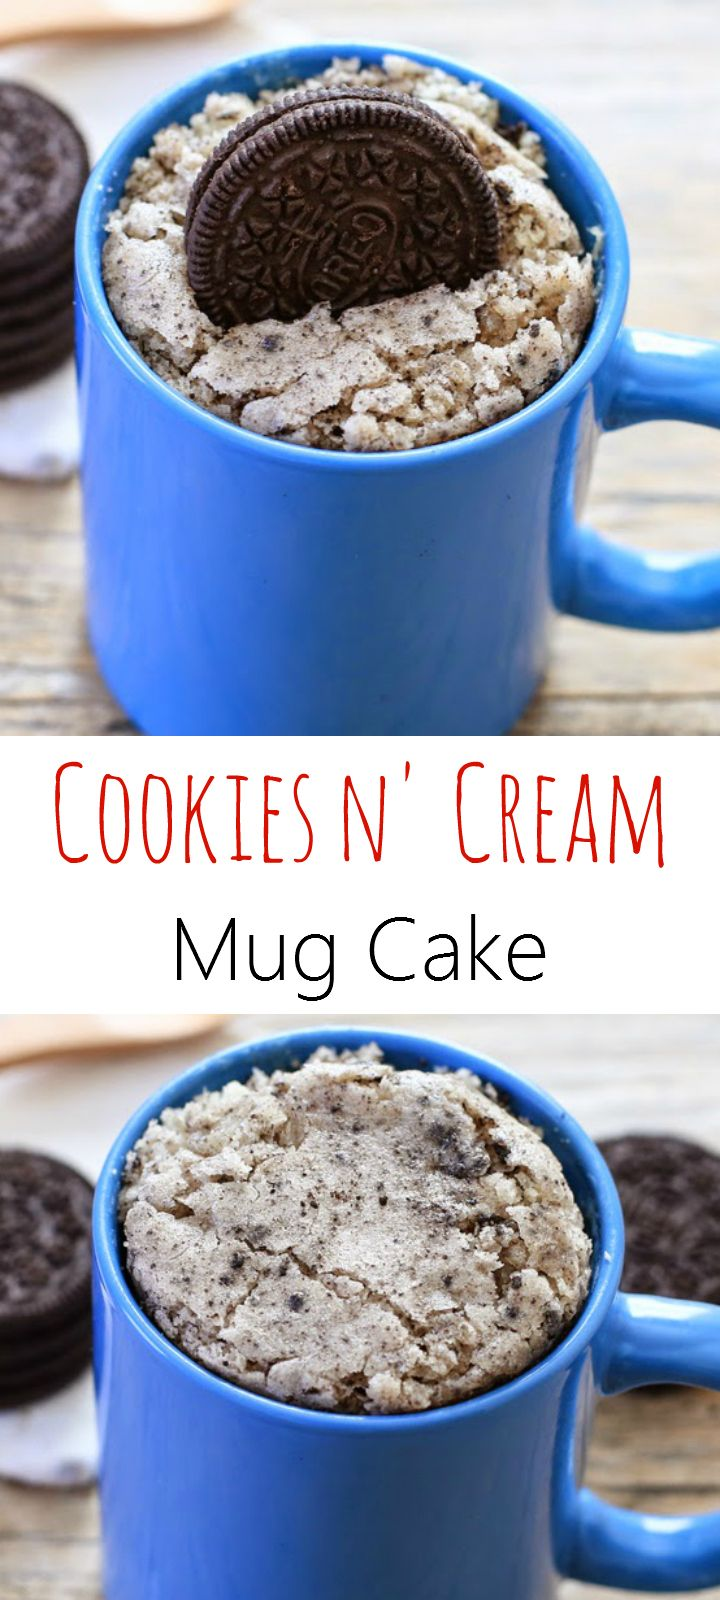 on jackets and Cream the person sale Cookies Love size serving perfect   men   or   for     Cake  there Mug mugcakes